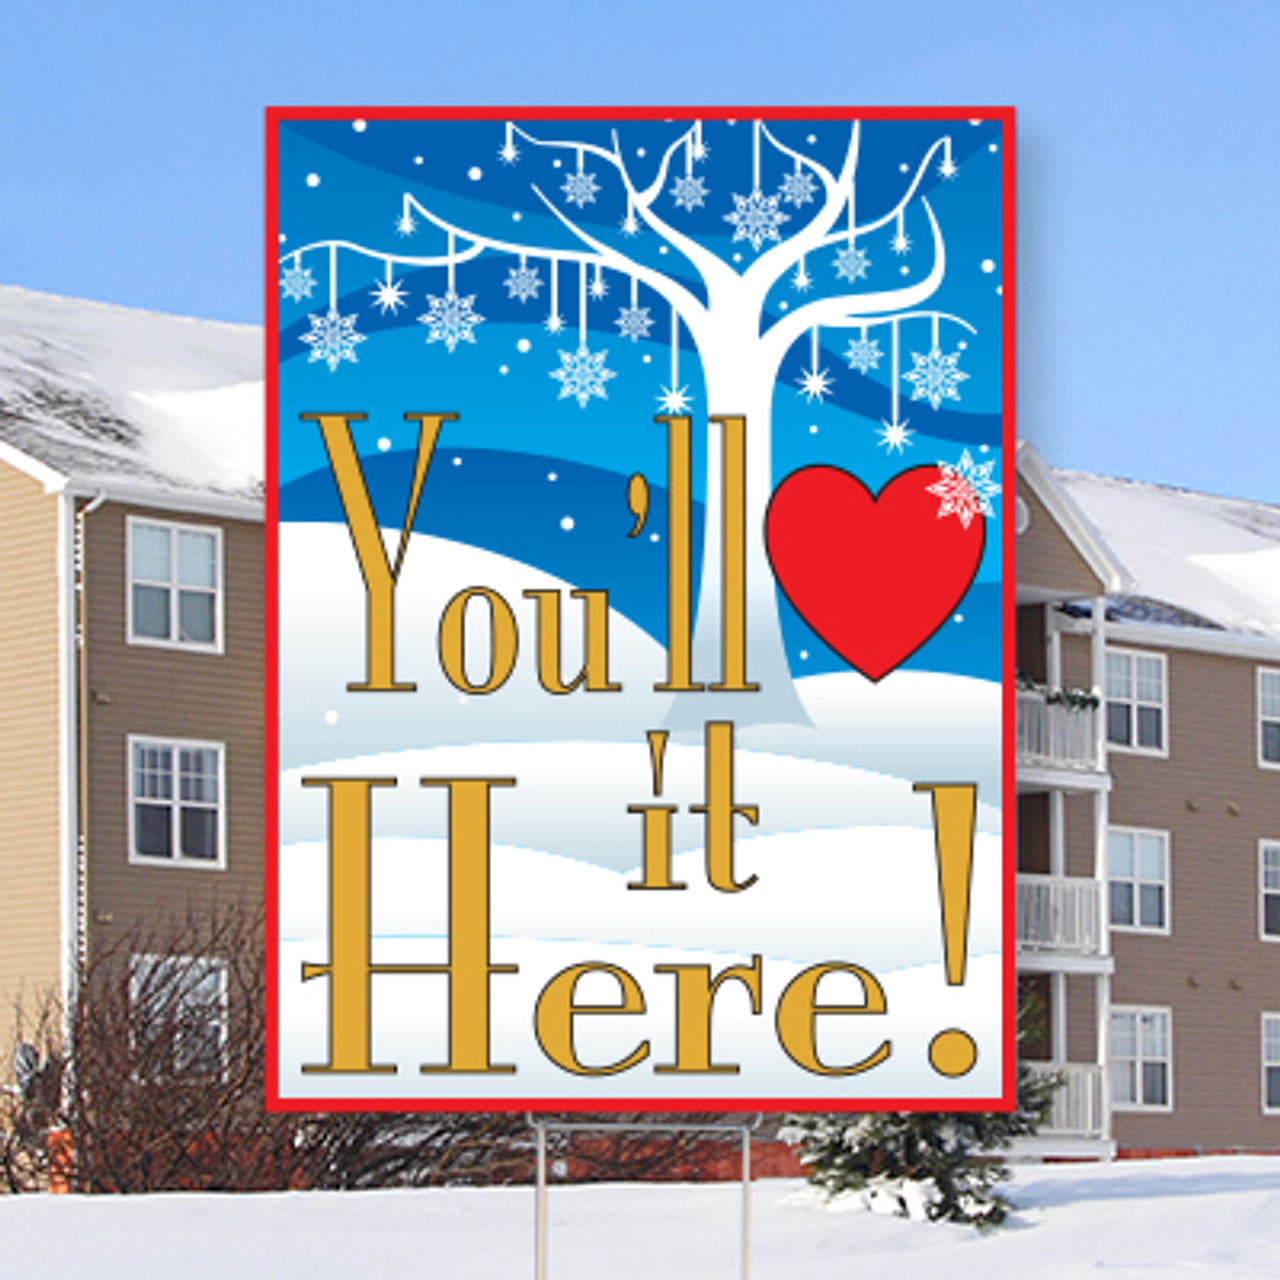 """You'll (heart) It Here!-18""""x24""""Sign- Winter Wonderland Theme"""